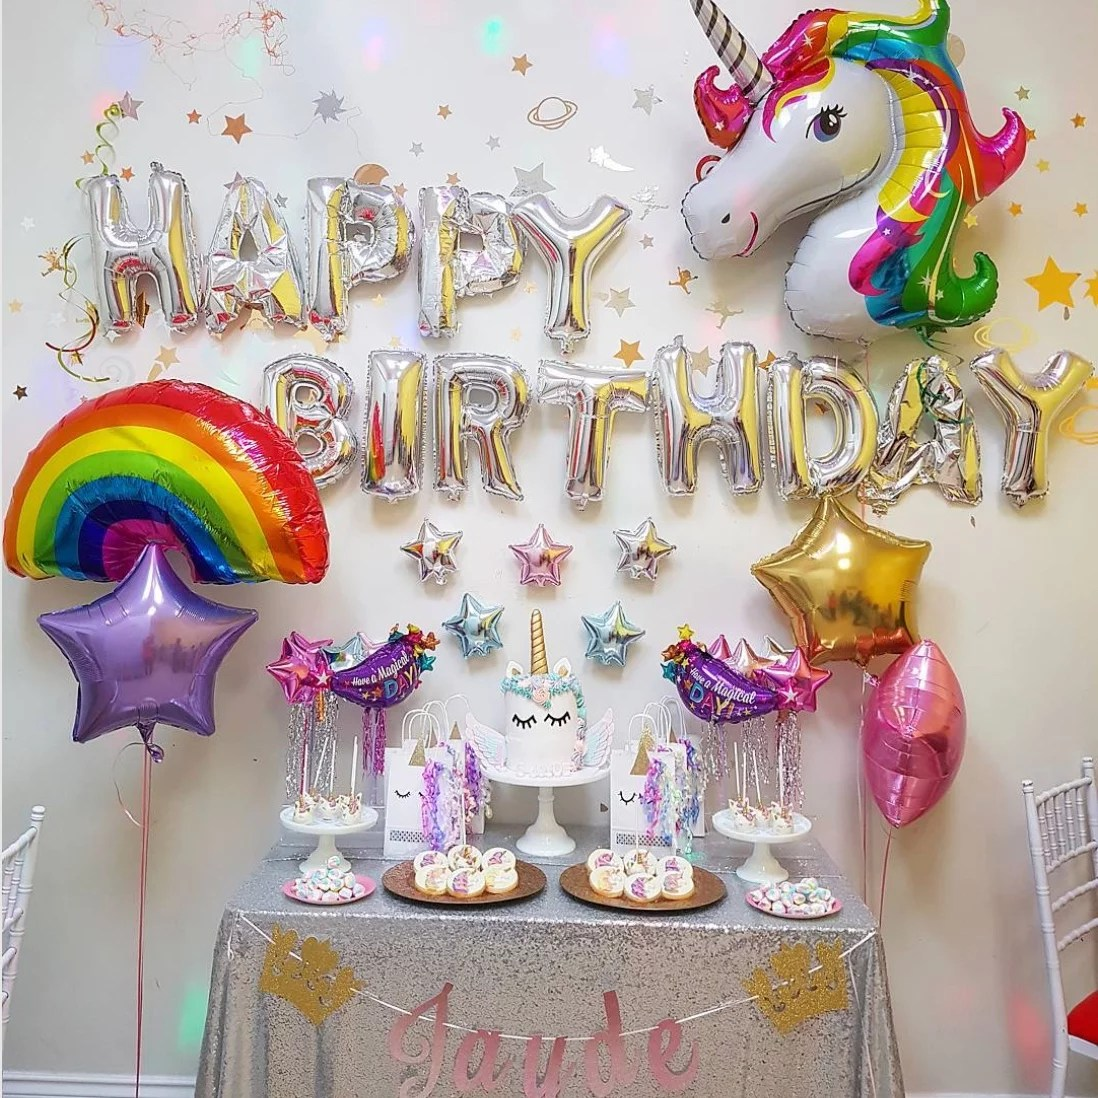 Lovely Rainbow Birthday Party Ideas Popsugar Moms Birthday Ideas No Party Birthday Ideas Summer ideas First Birthday Ideas